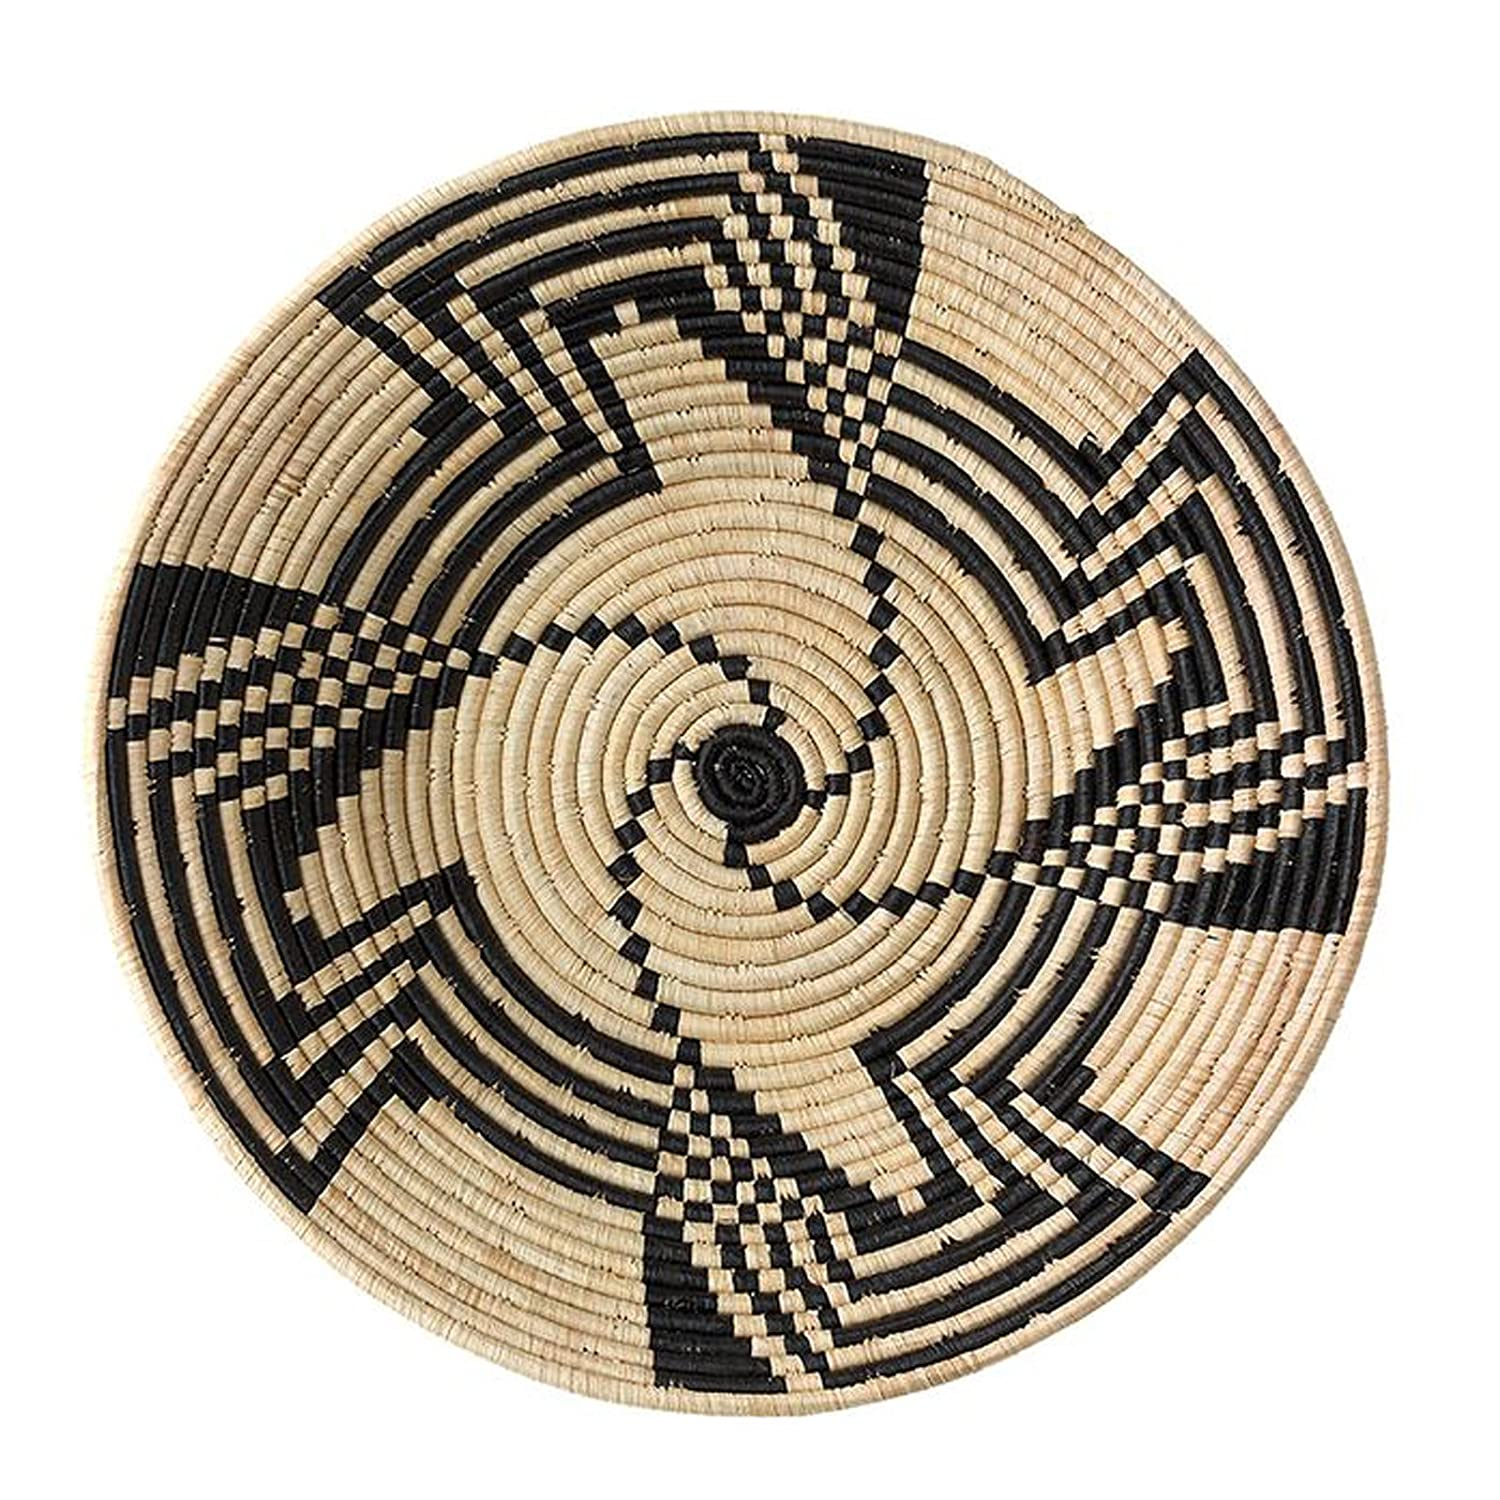 The Crabby Nook Black Swirl Design Fruit or Display African Basket Handwoven Home Decor African Artist 47682